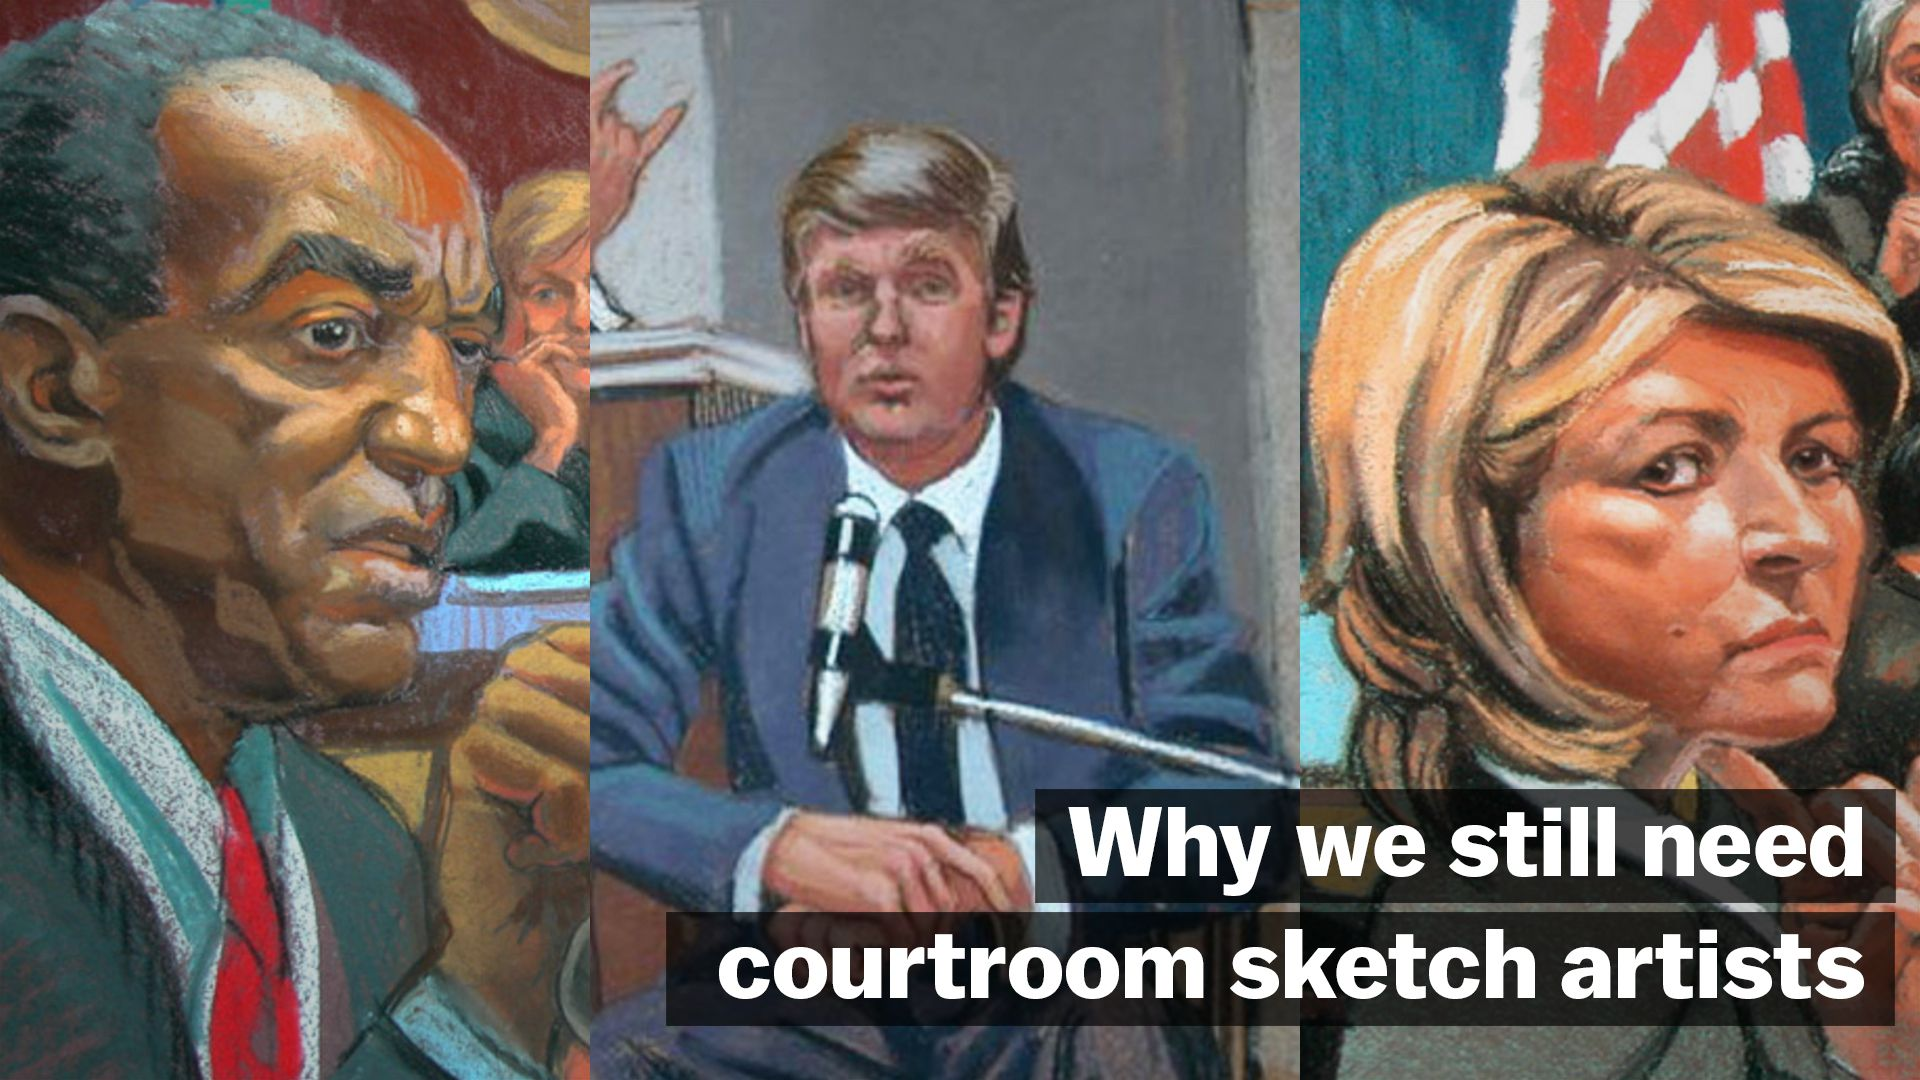 Why we still need courtroom sketch artists vox